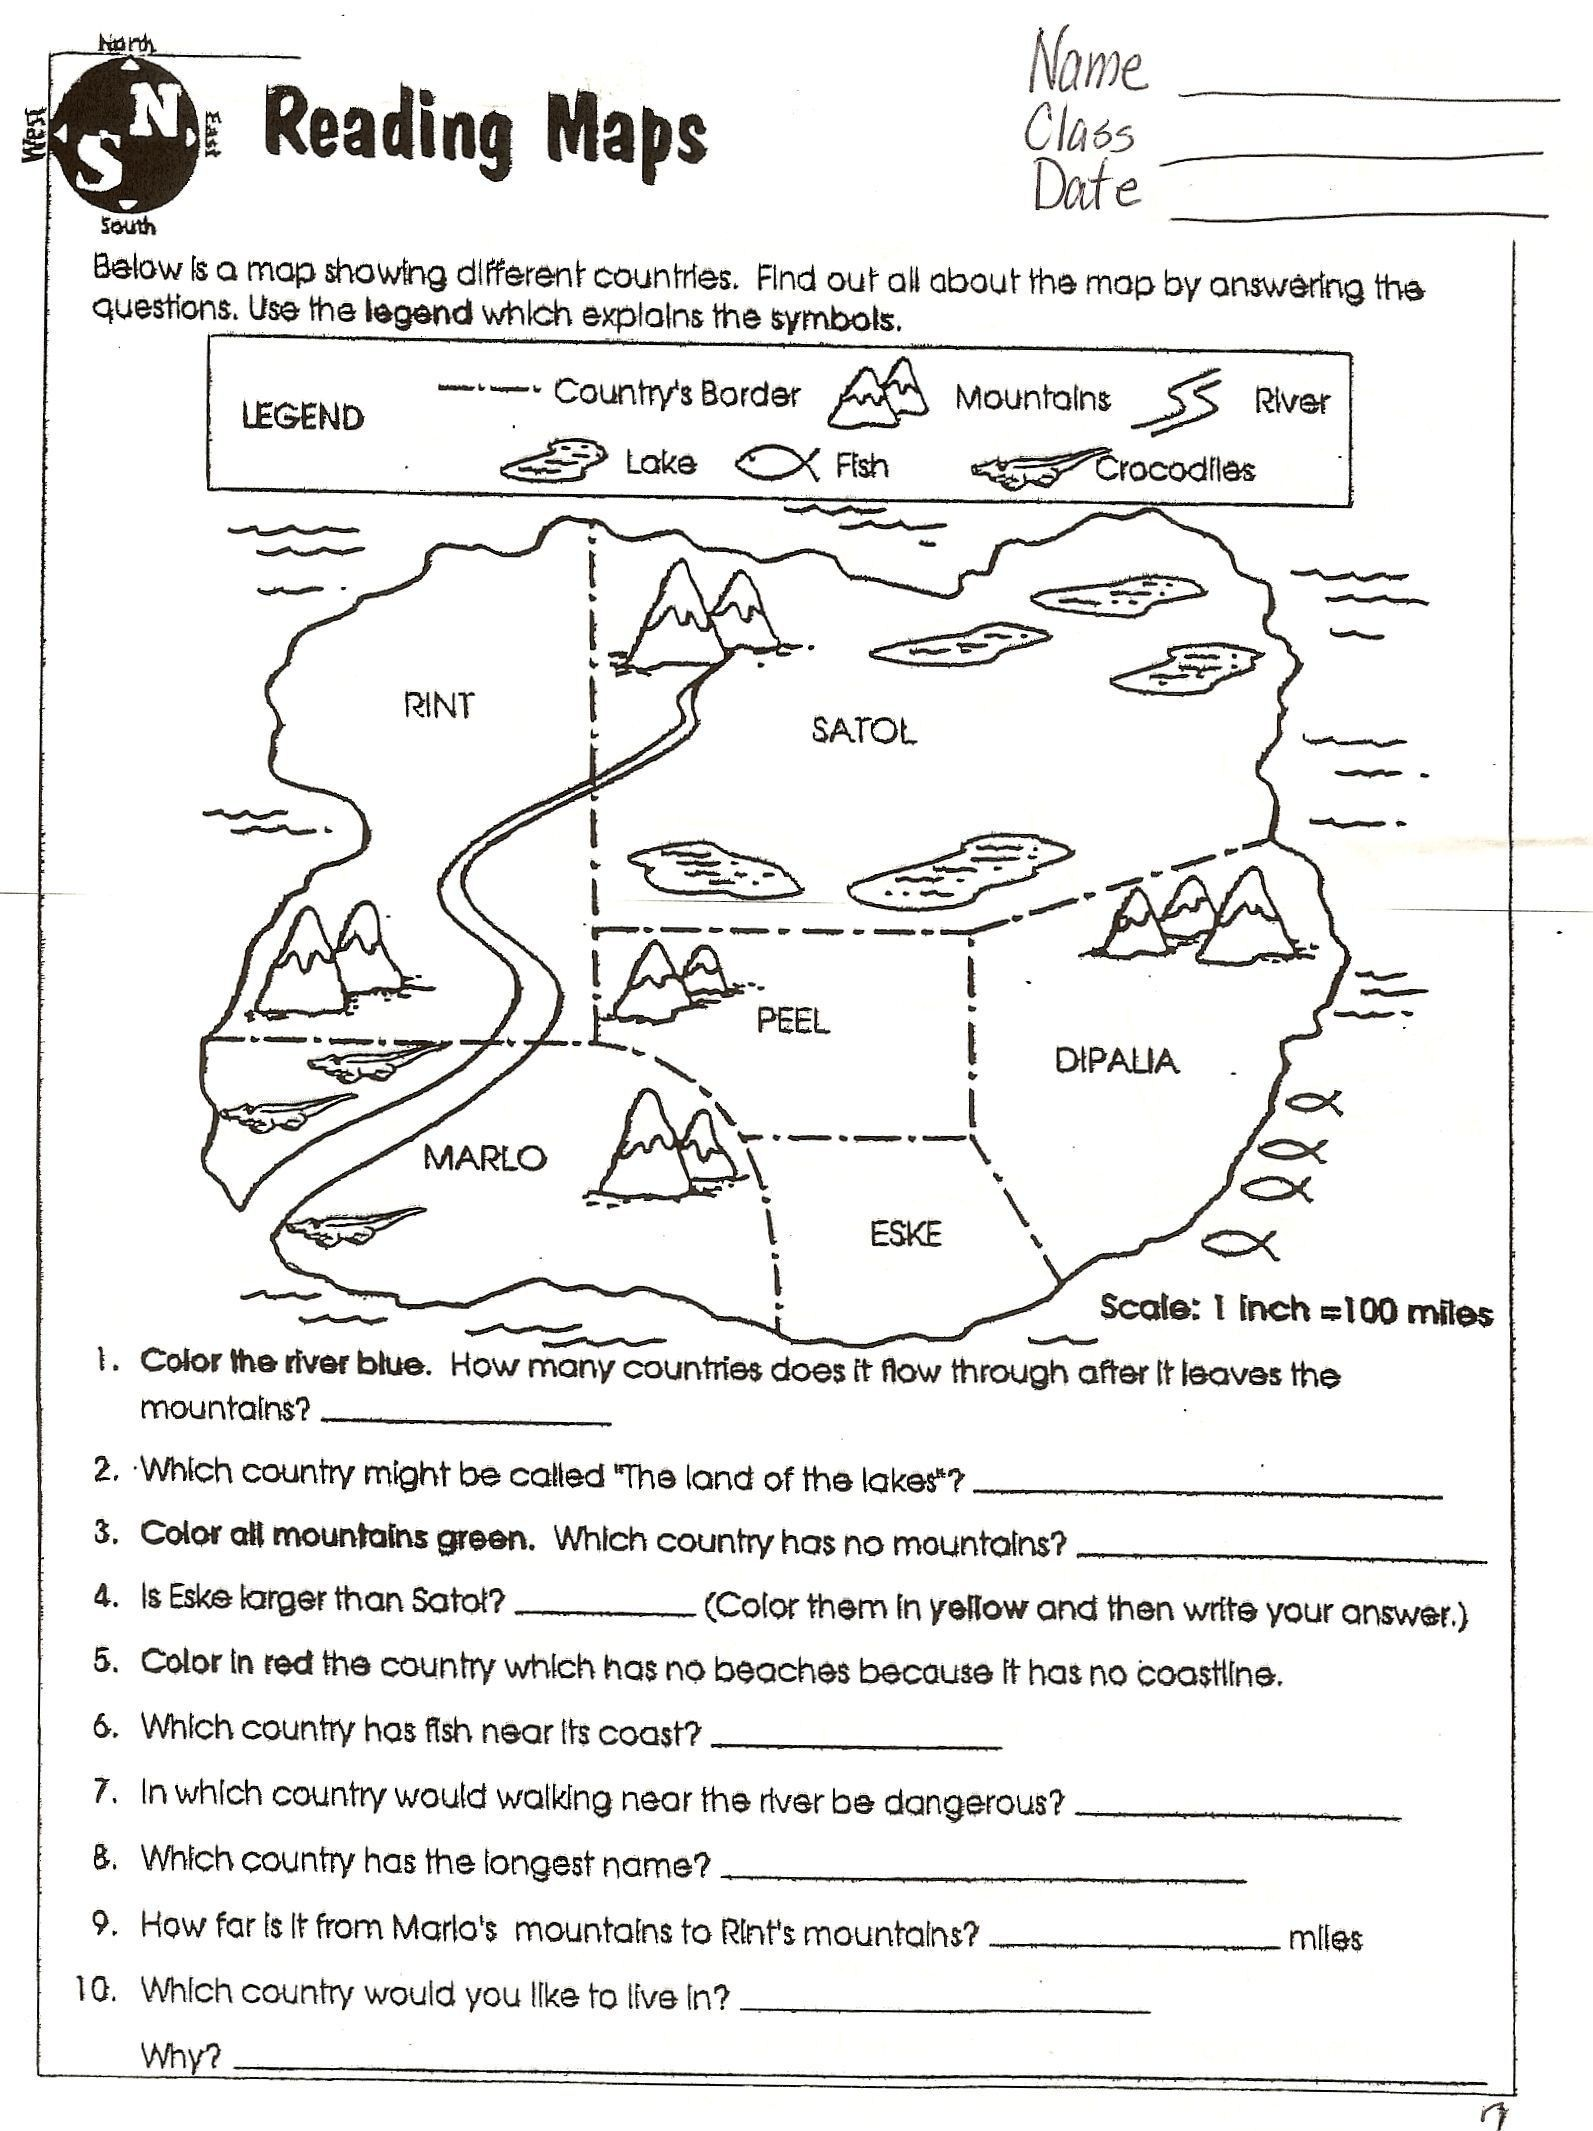 51 Grammar Worksheets Middle School Images With Images